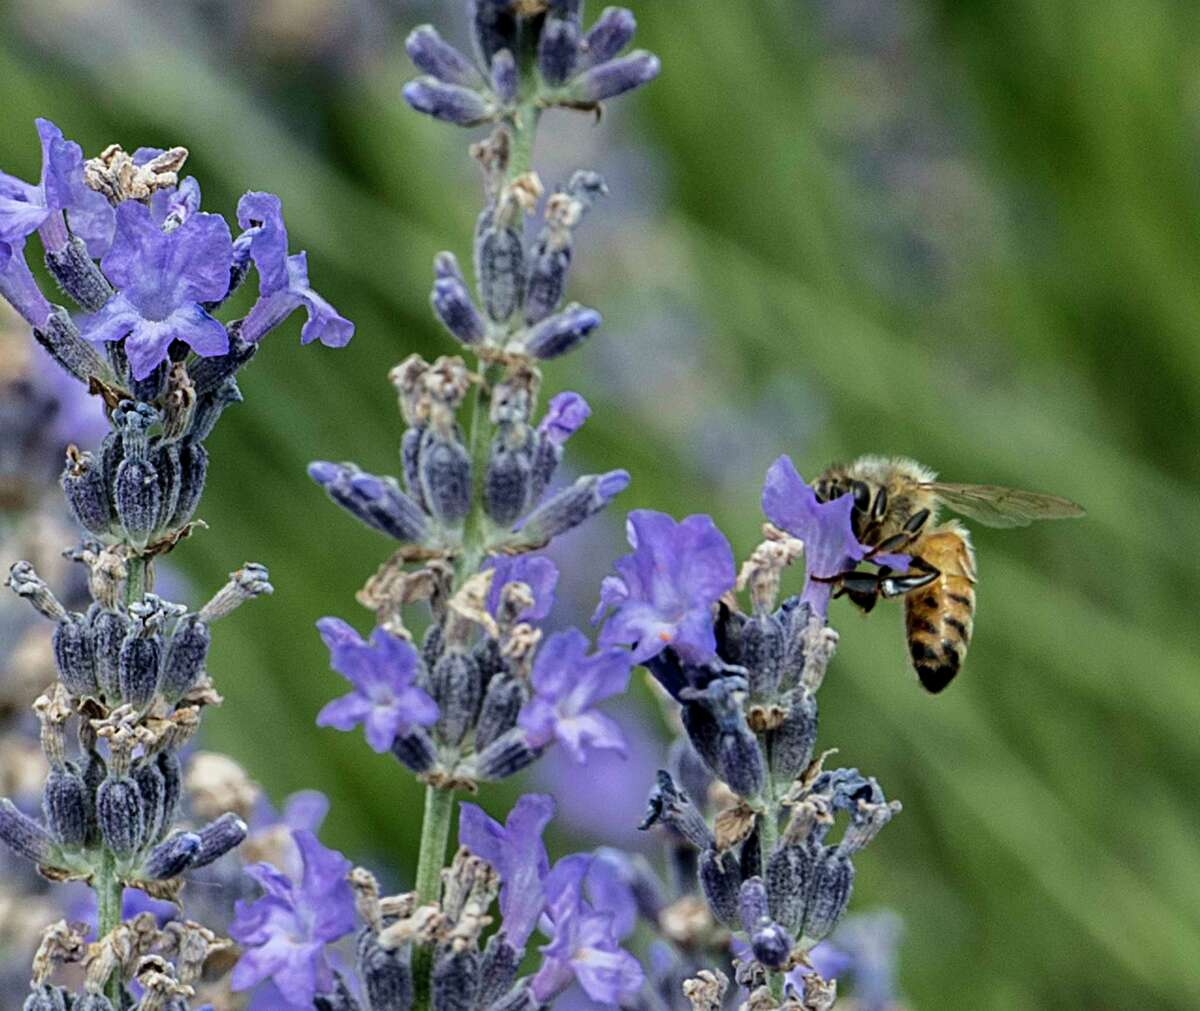 A honey bee does its magic on lavender plants at the Lavenlair Farms Tuesday July 10, 2018 in Whitehall, N.Y. (Skip Dickstein/Times Union)